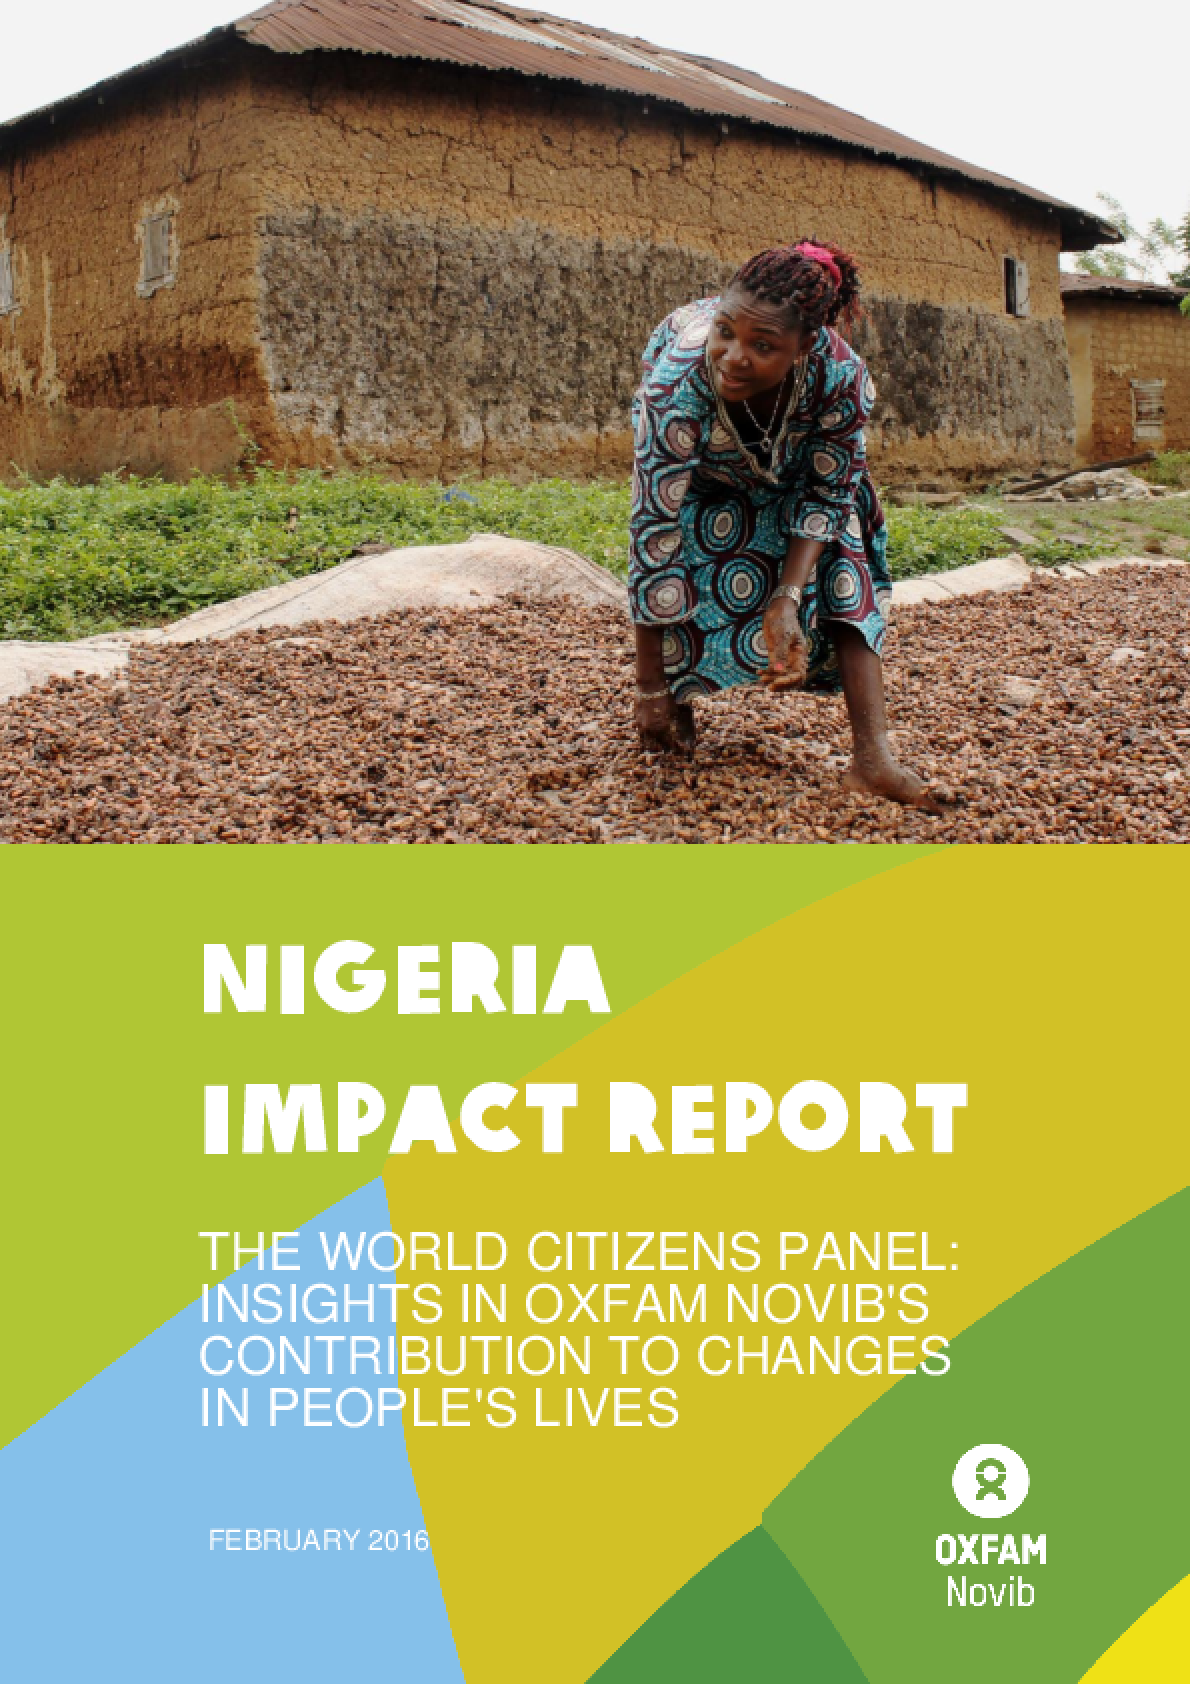 Nigeria Impact Report: The World Citizens Panel